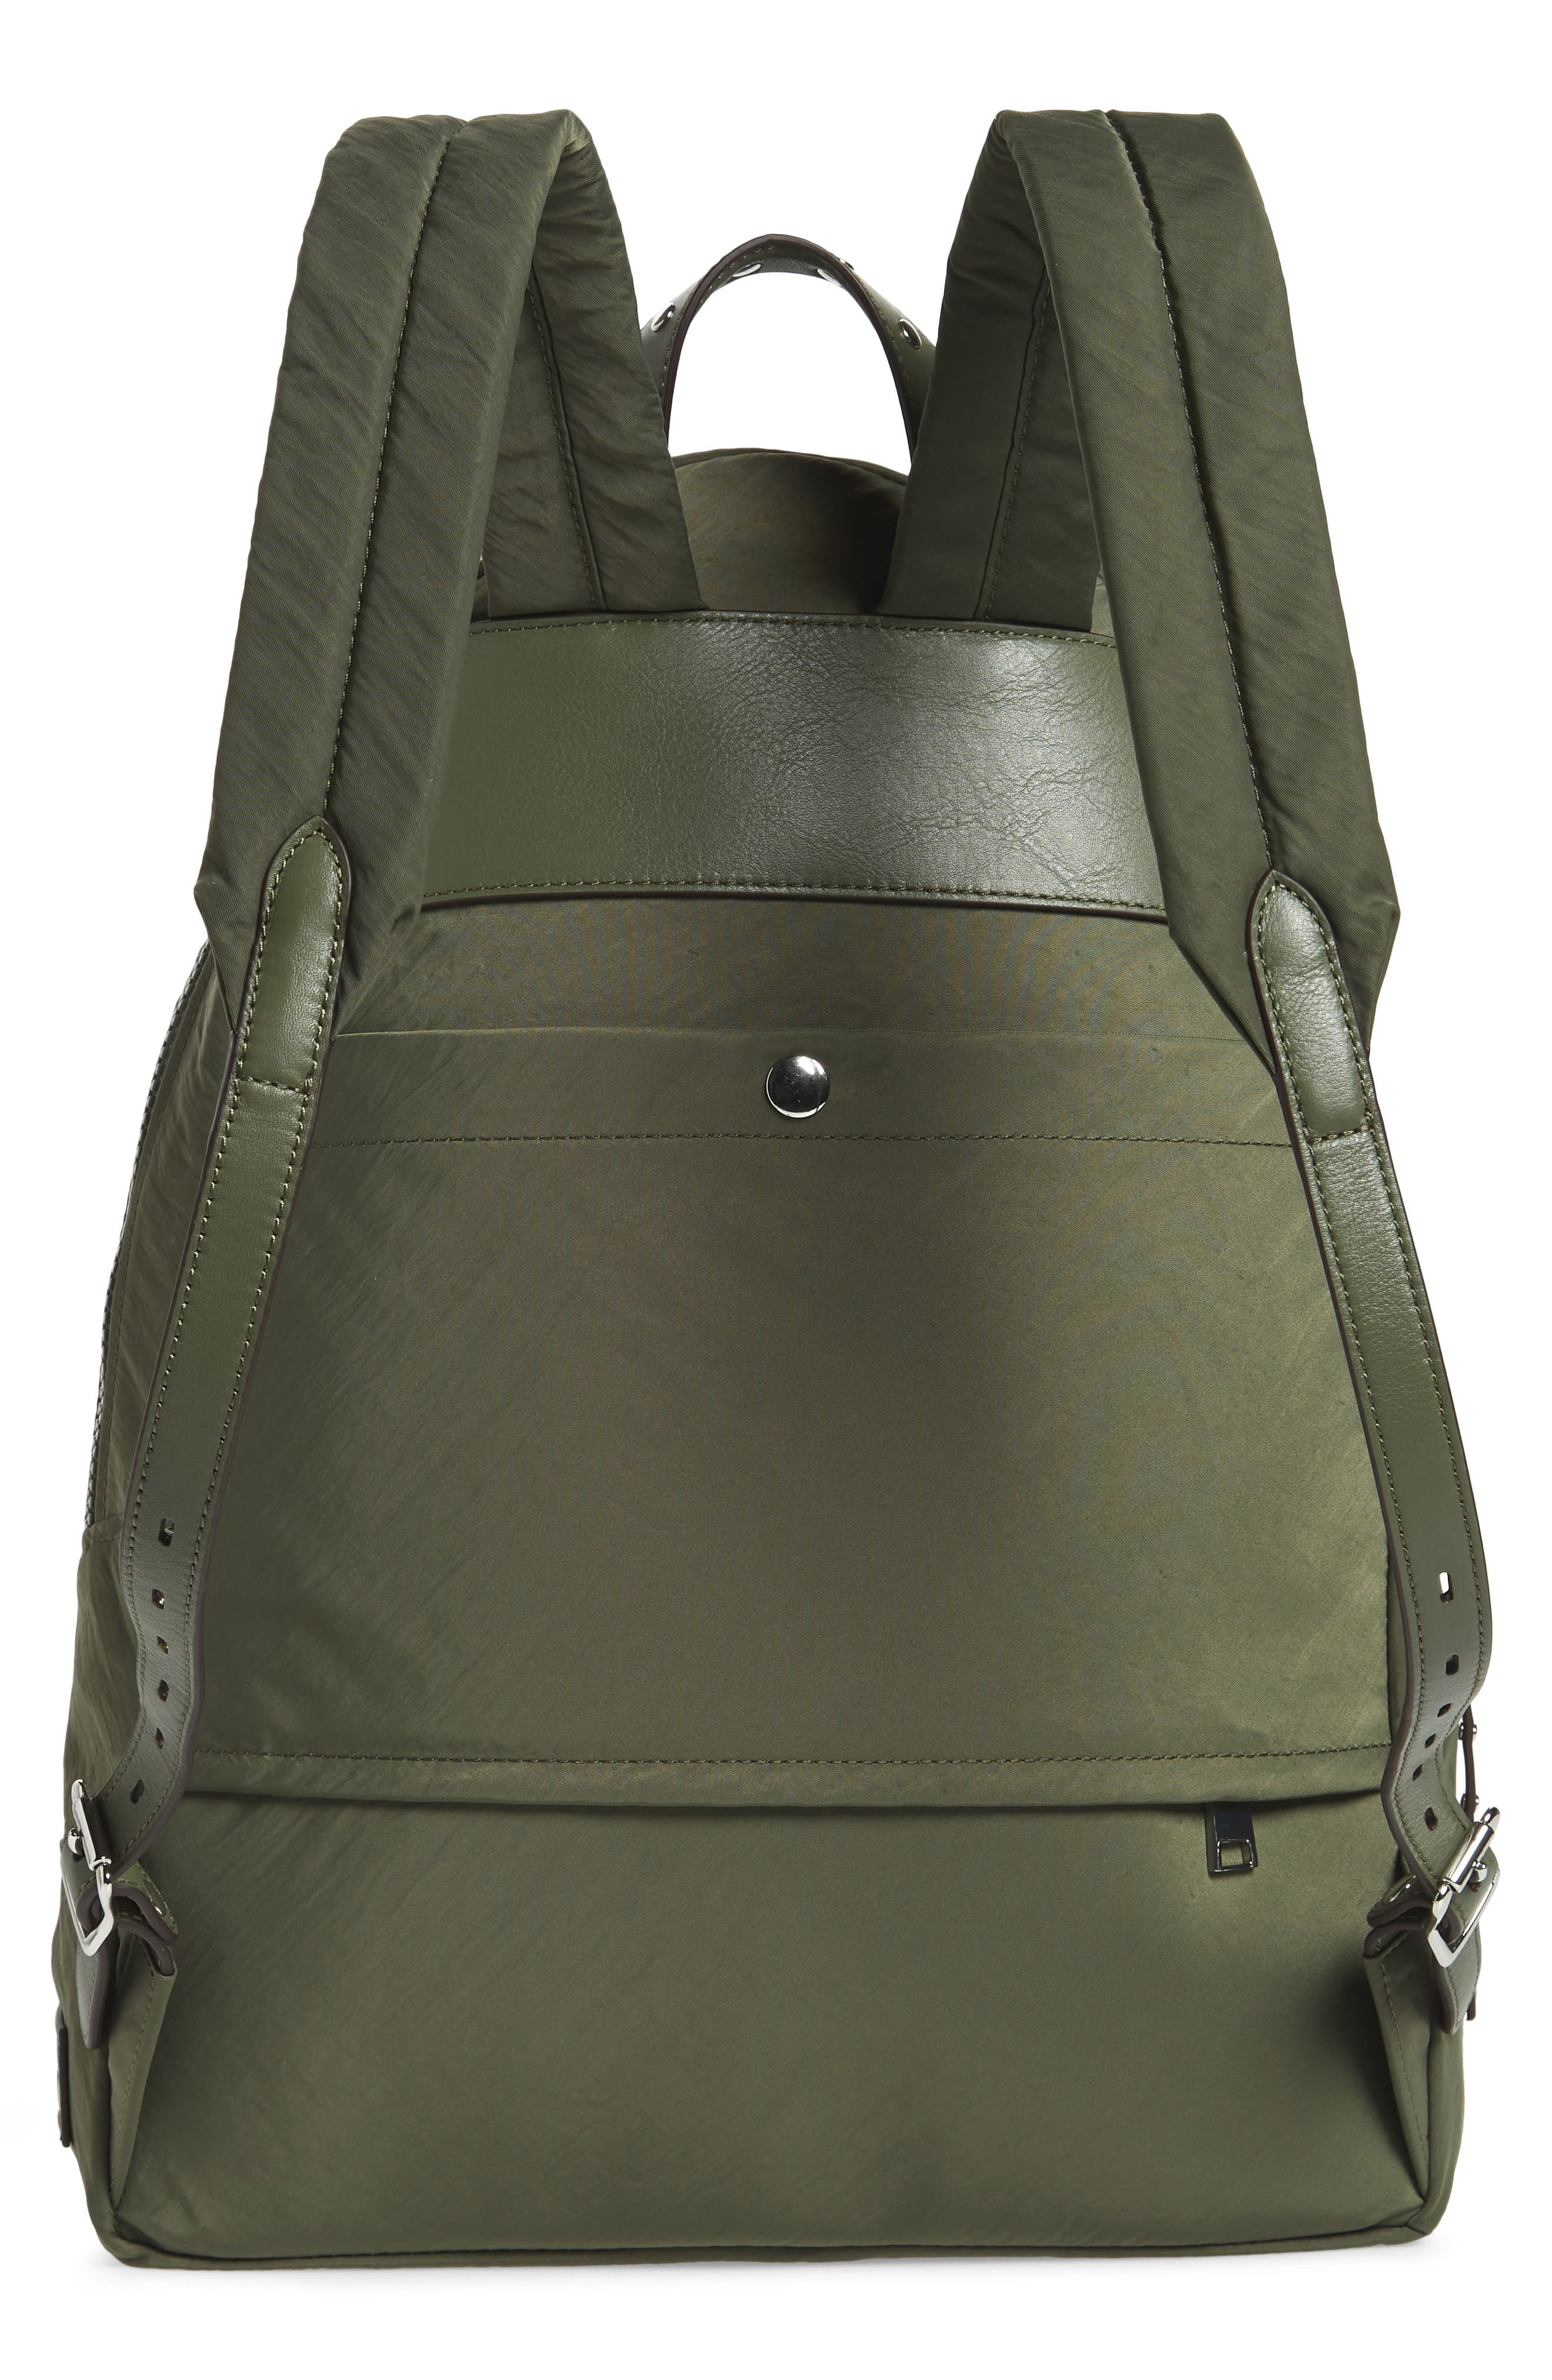 REBECCA MINKOFF, Always On MAB Backpack, Alternate thumbnail 3, color, OLIVE